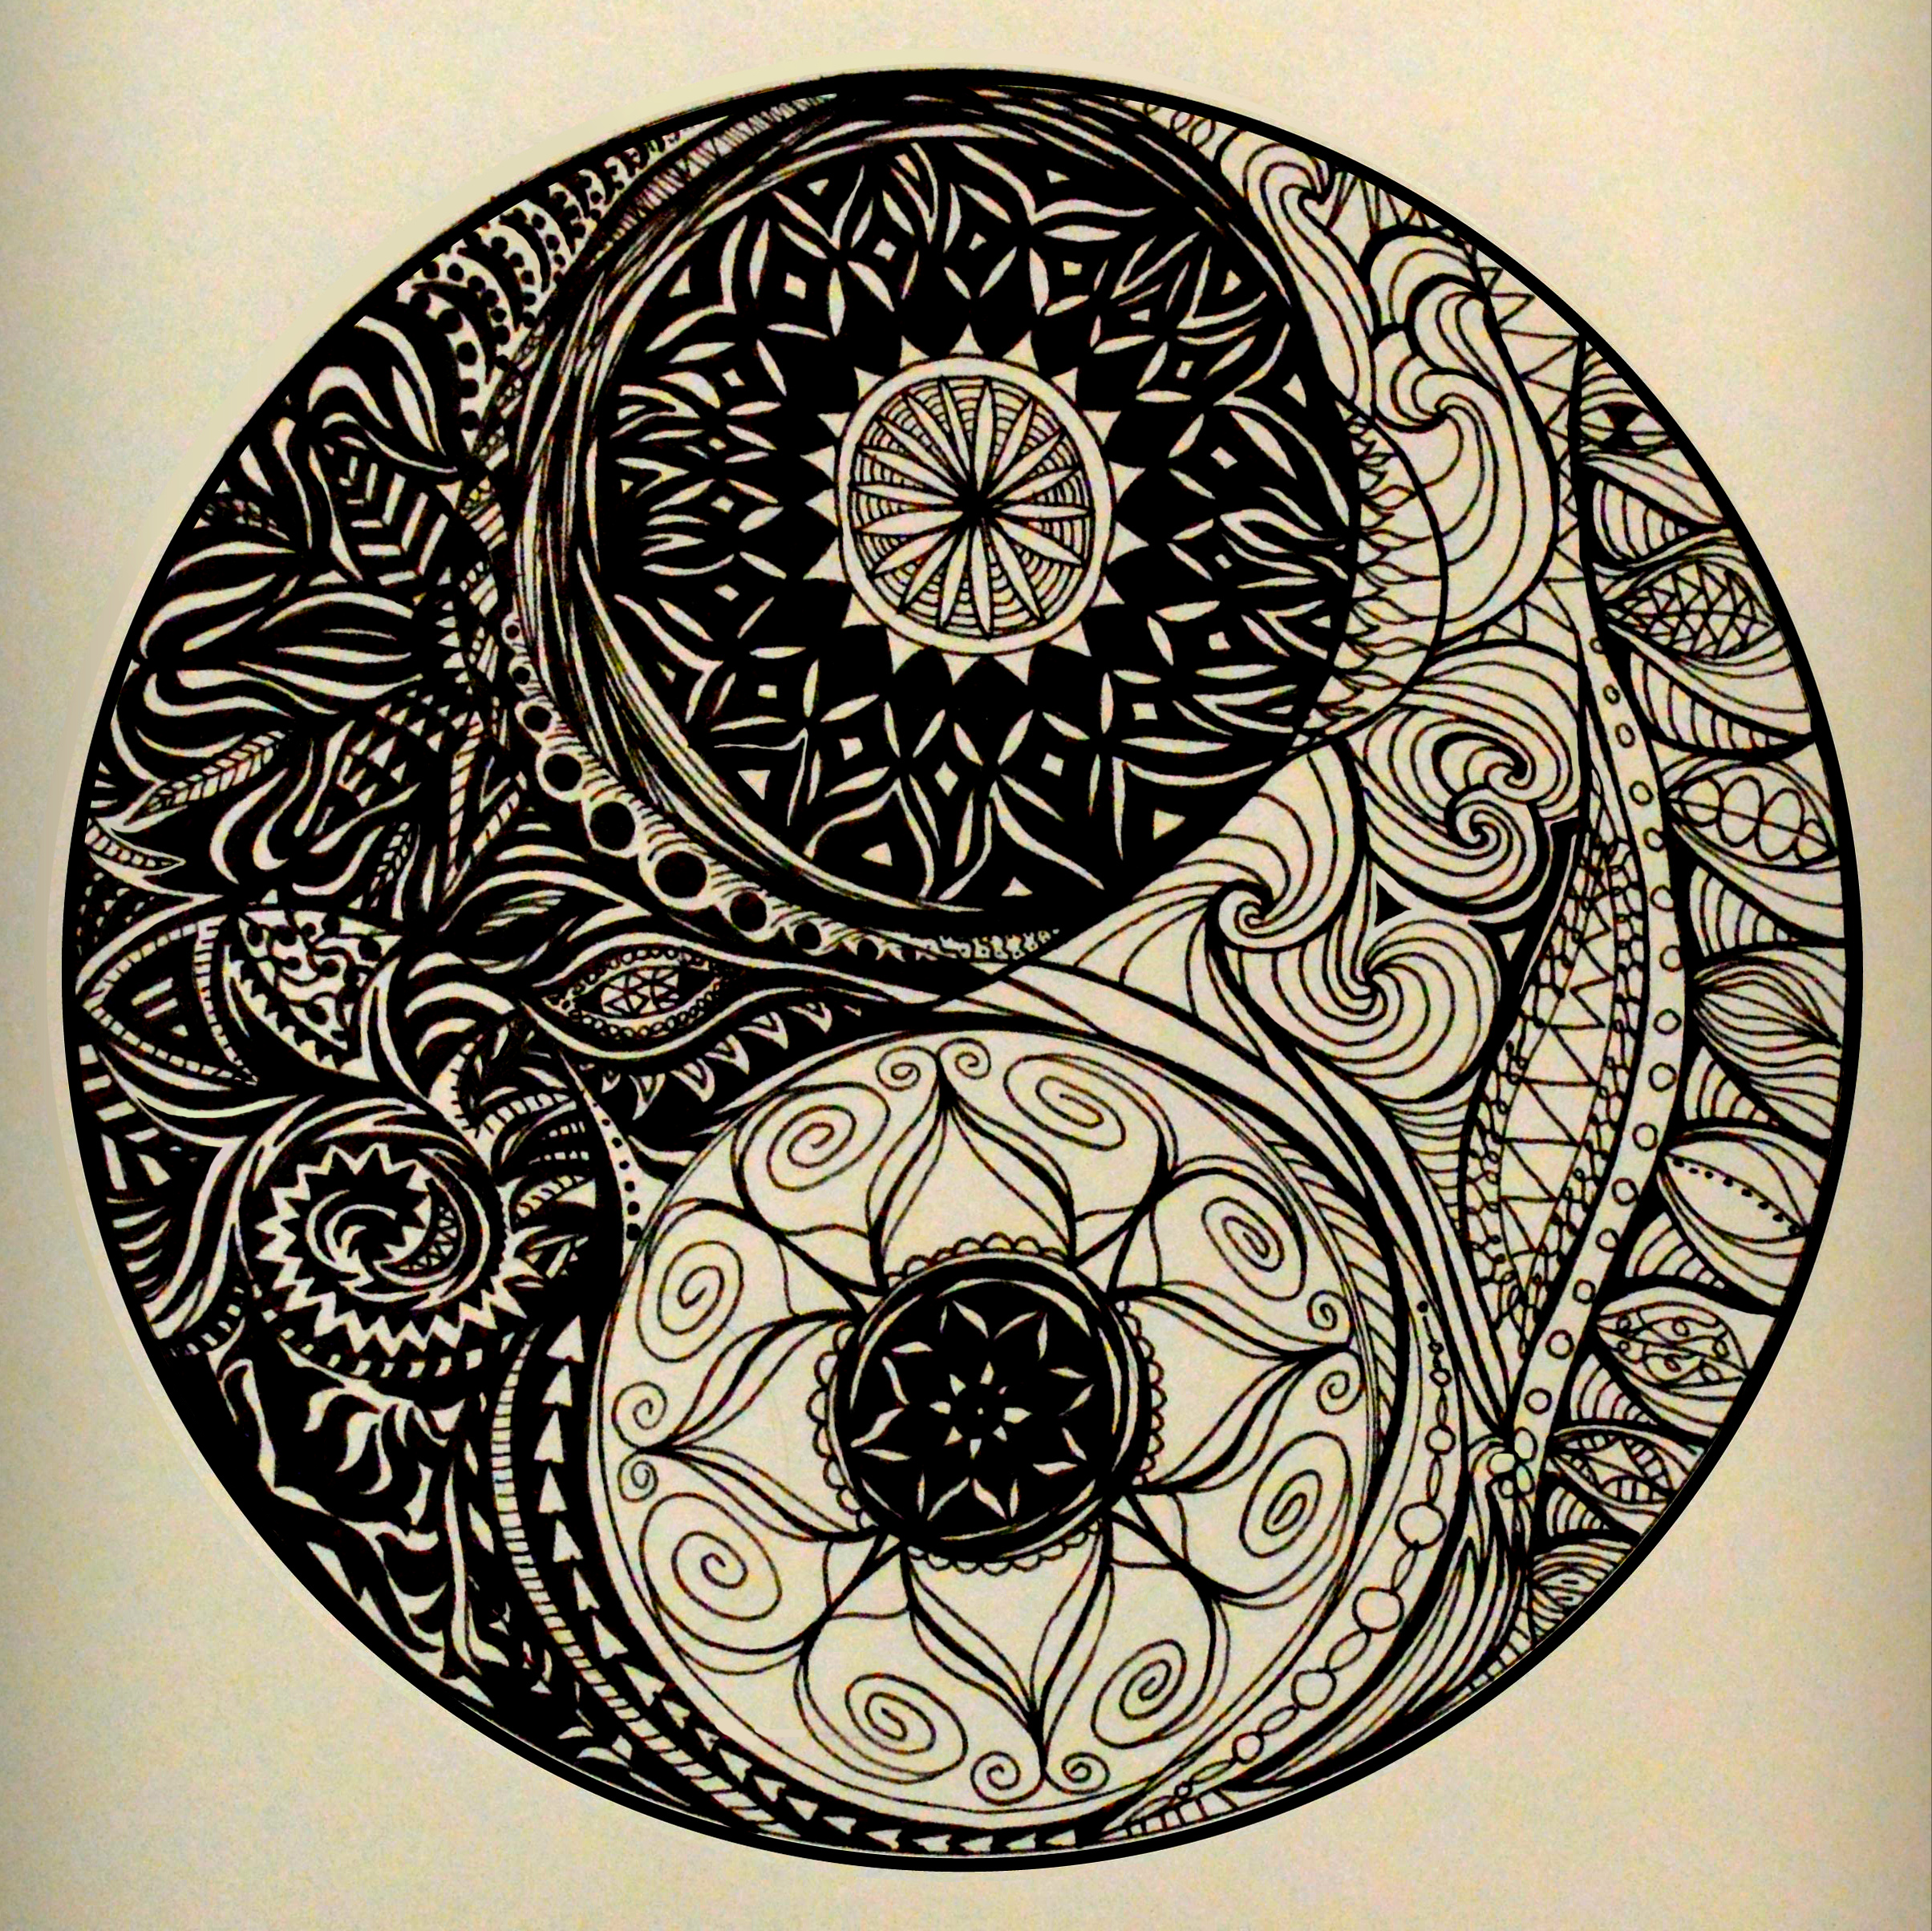 yin and yang design - finding balance in life